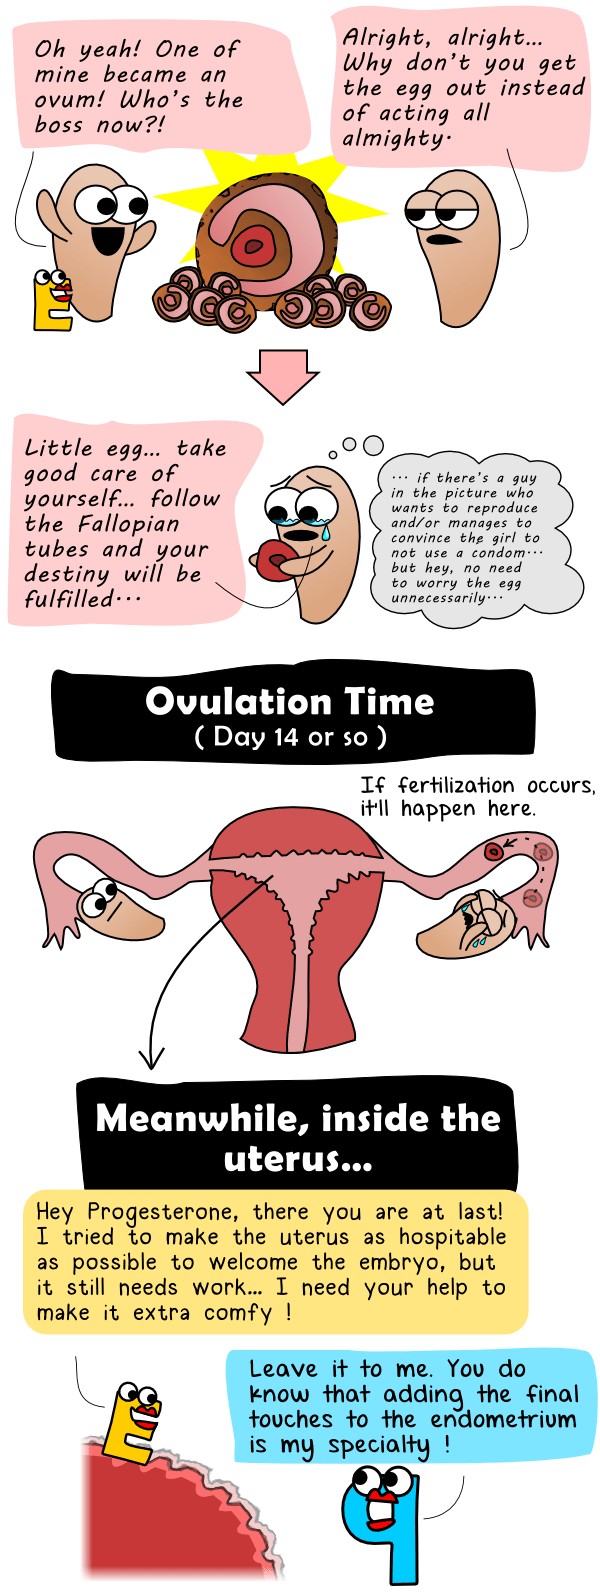 The ovum begins its journey and progesterone prepares the endometrium